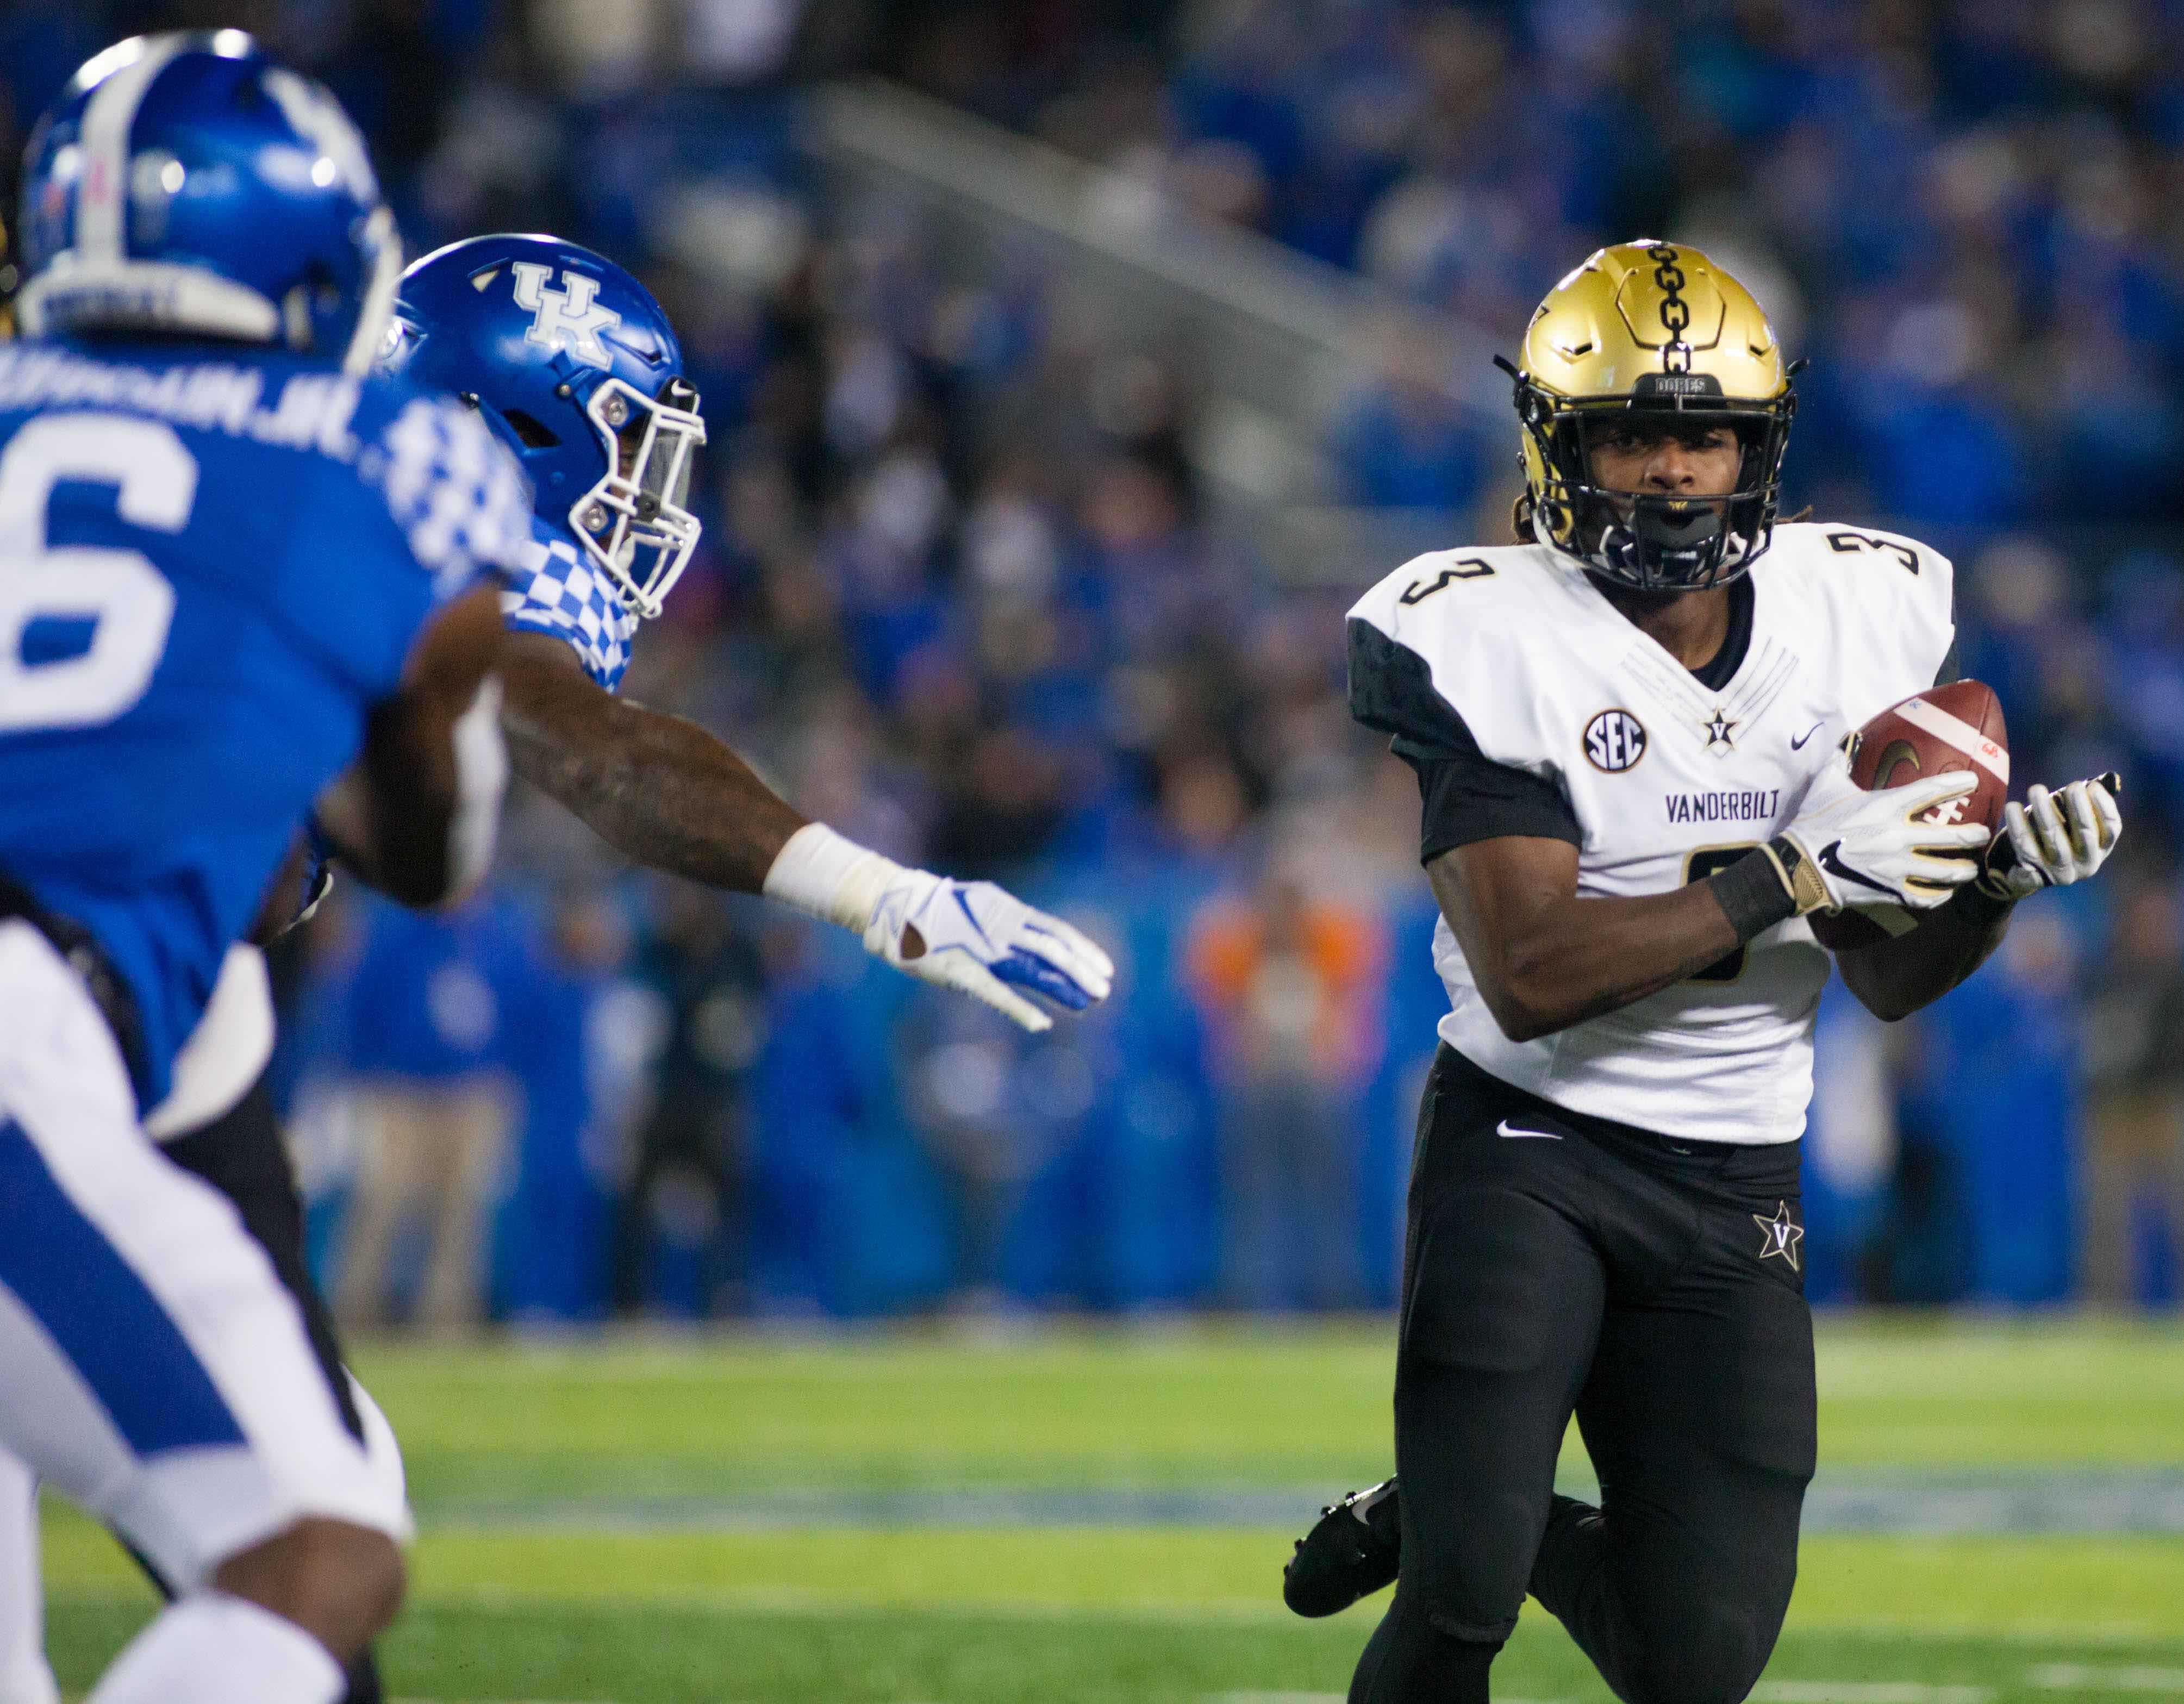 Vanderbilt dismantled by Kentucky, 38-14